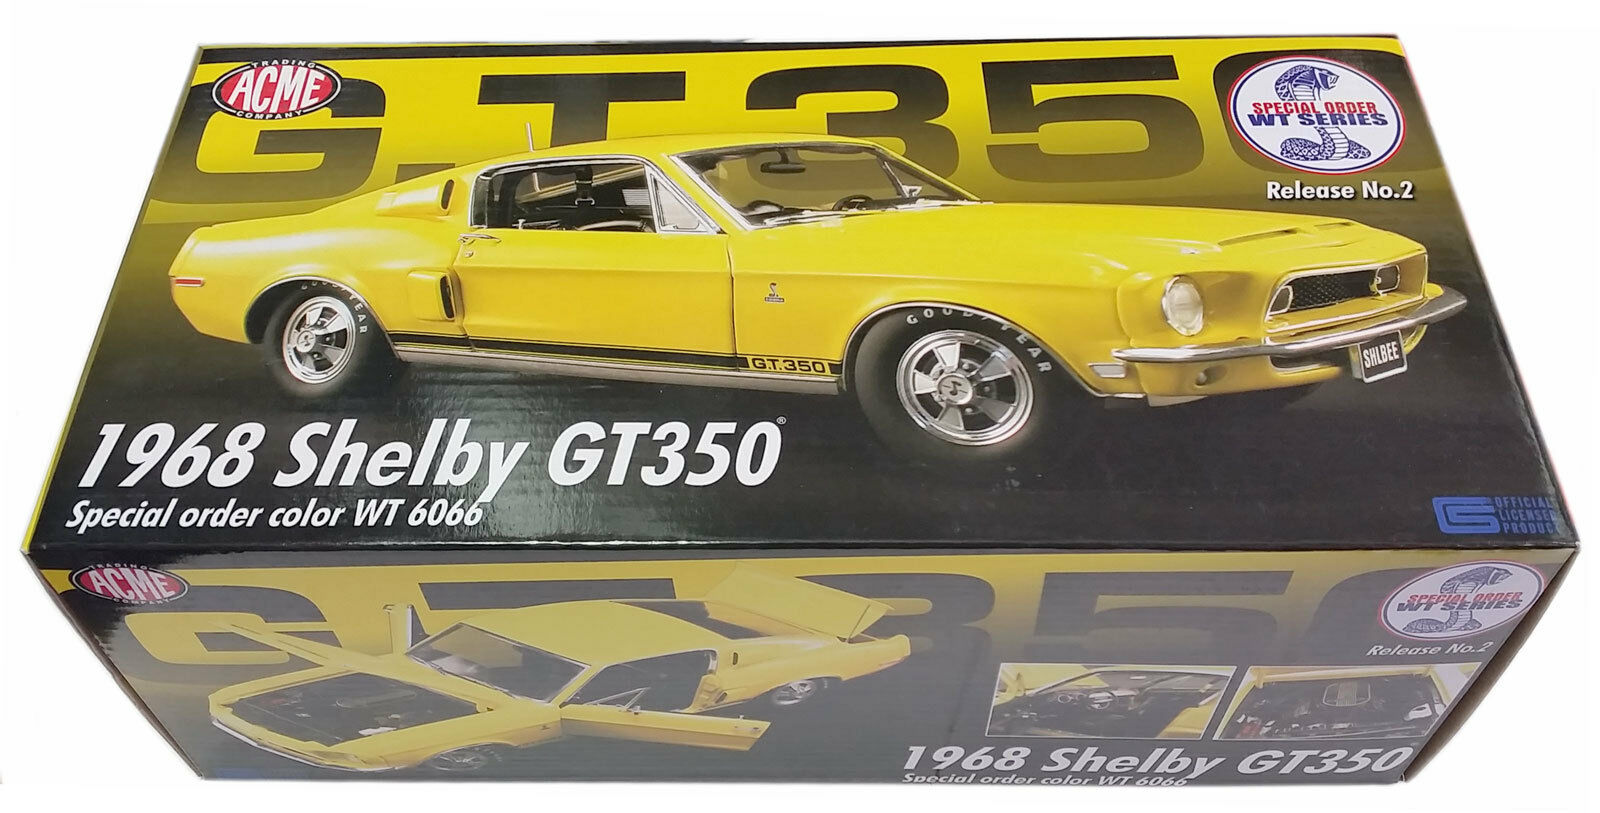 Acme 1   18 1968er ford mustang shelby gt350 gelb wt6066 ltd ed 1098 pcs a1805201